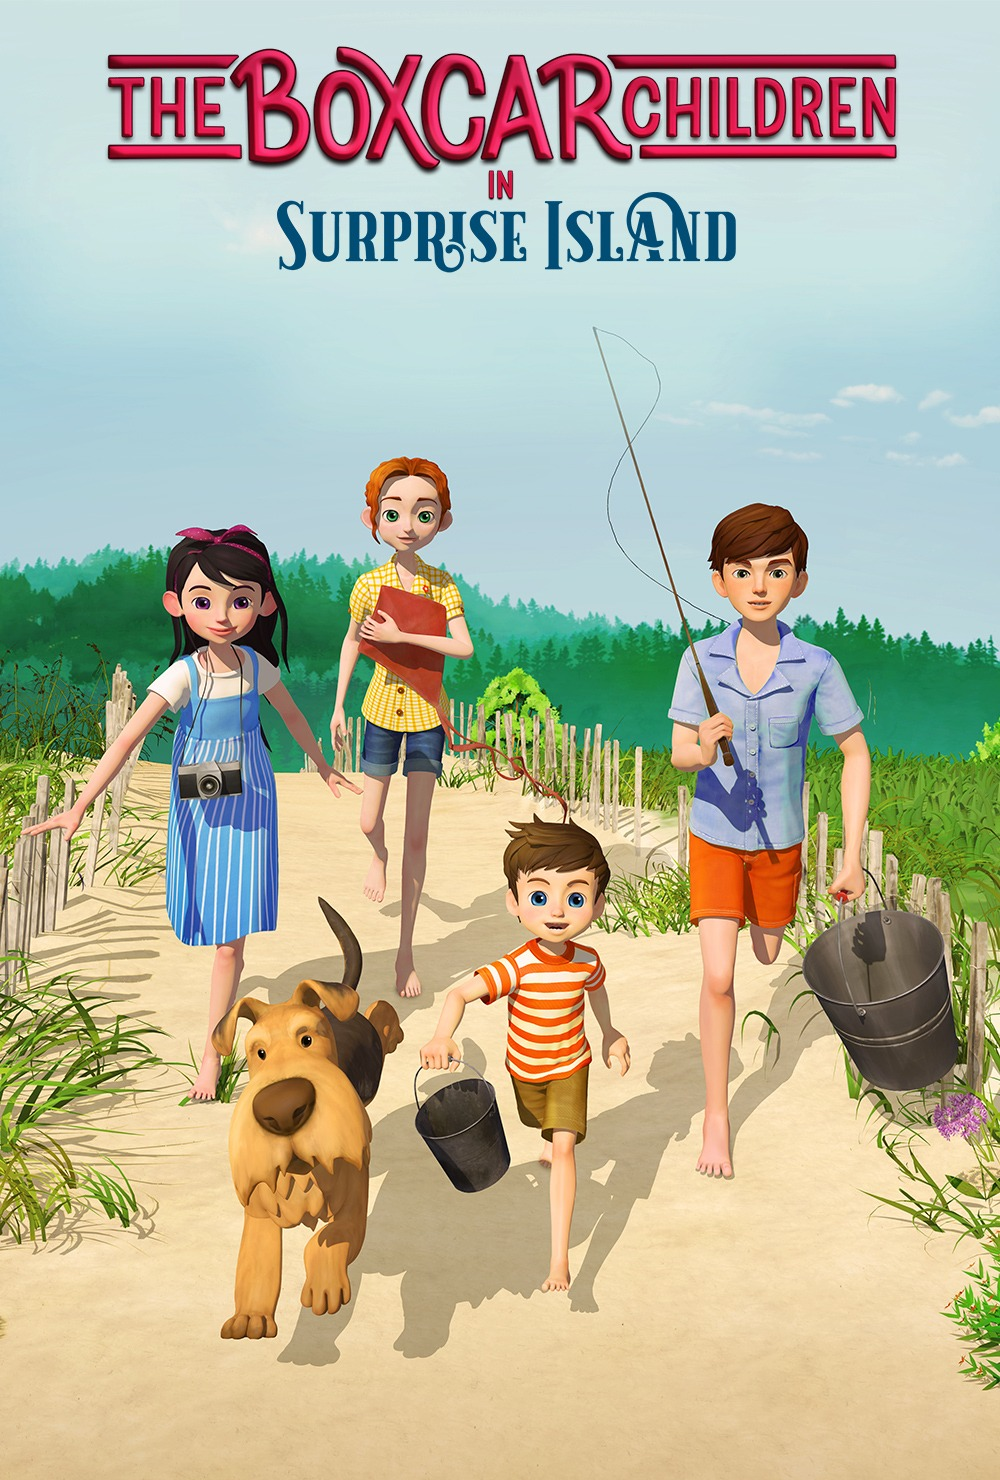 the boxcar children The boxcar children full movie here you can stream and watch the boxcar children movie [2014] family genre, animation genre, adventure genre, released in 2014 movie was produced in kr, us, gt under mark az dippé productionunder karl golden productionunder daniel chuba productionunder kyungho jo production.